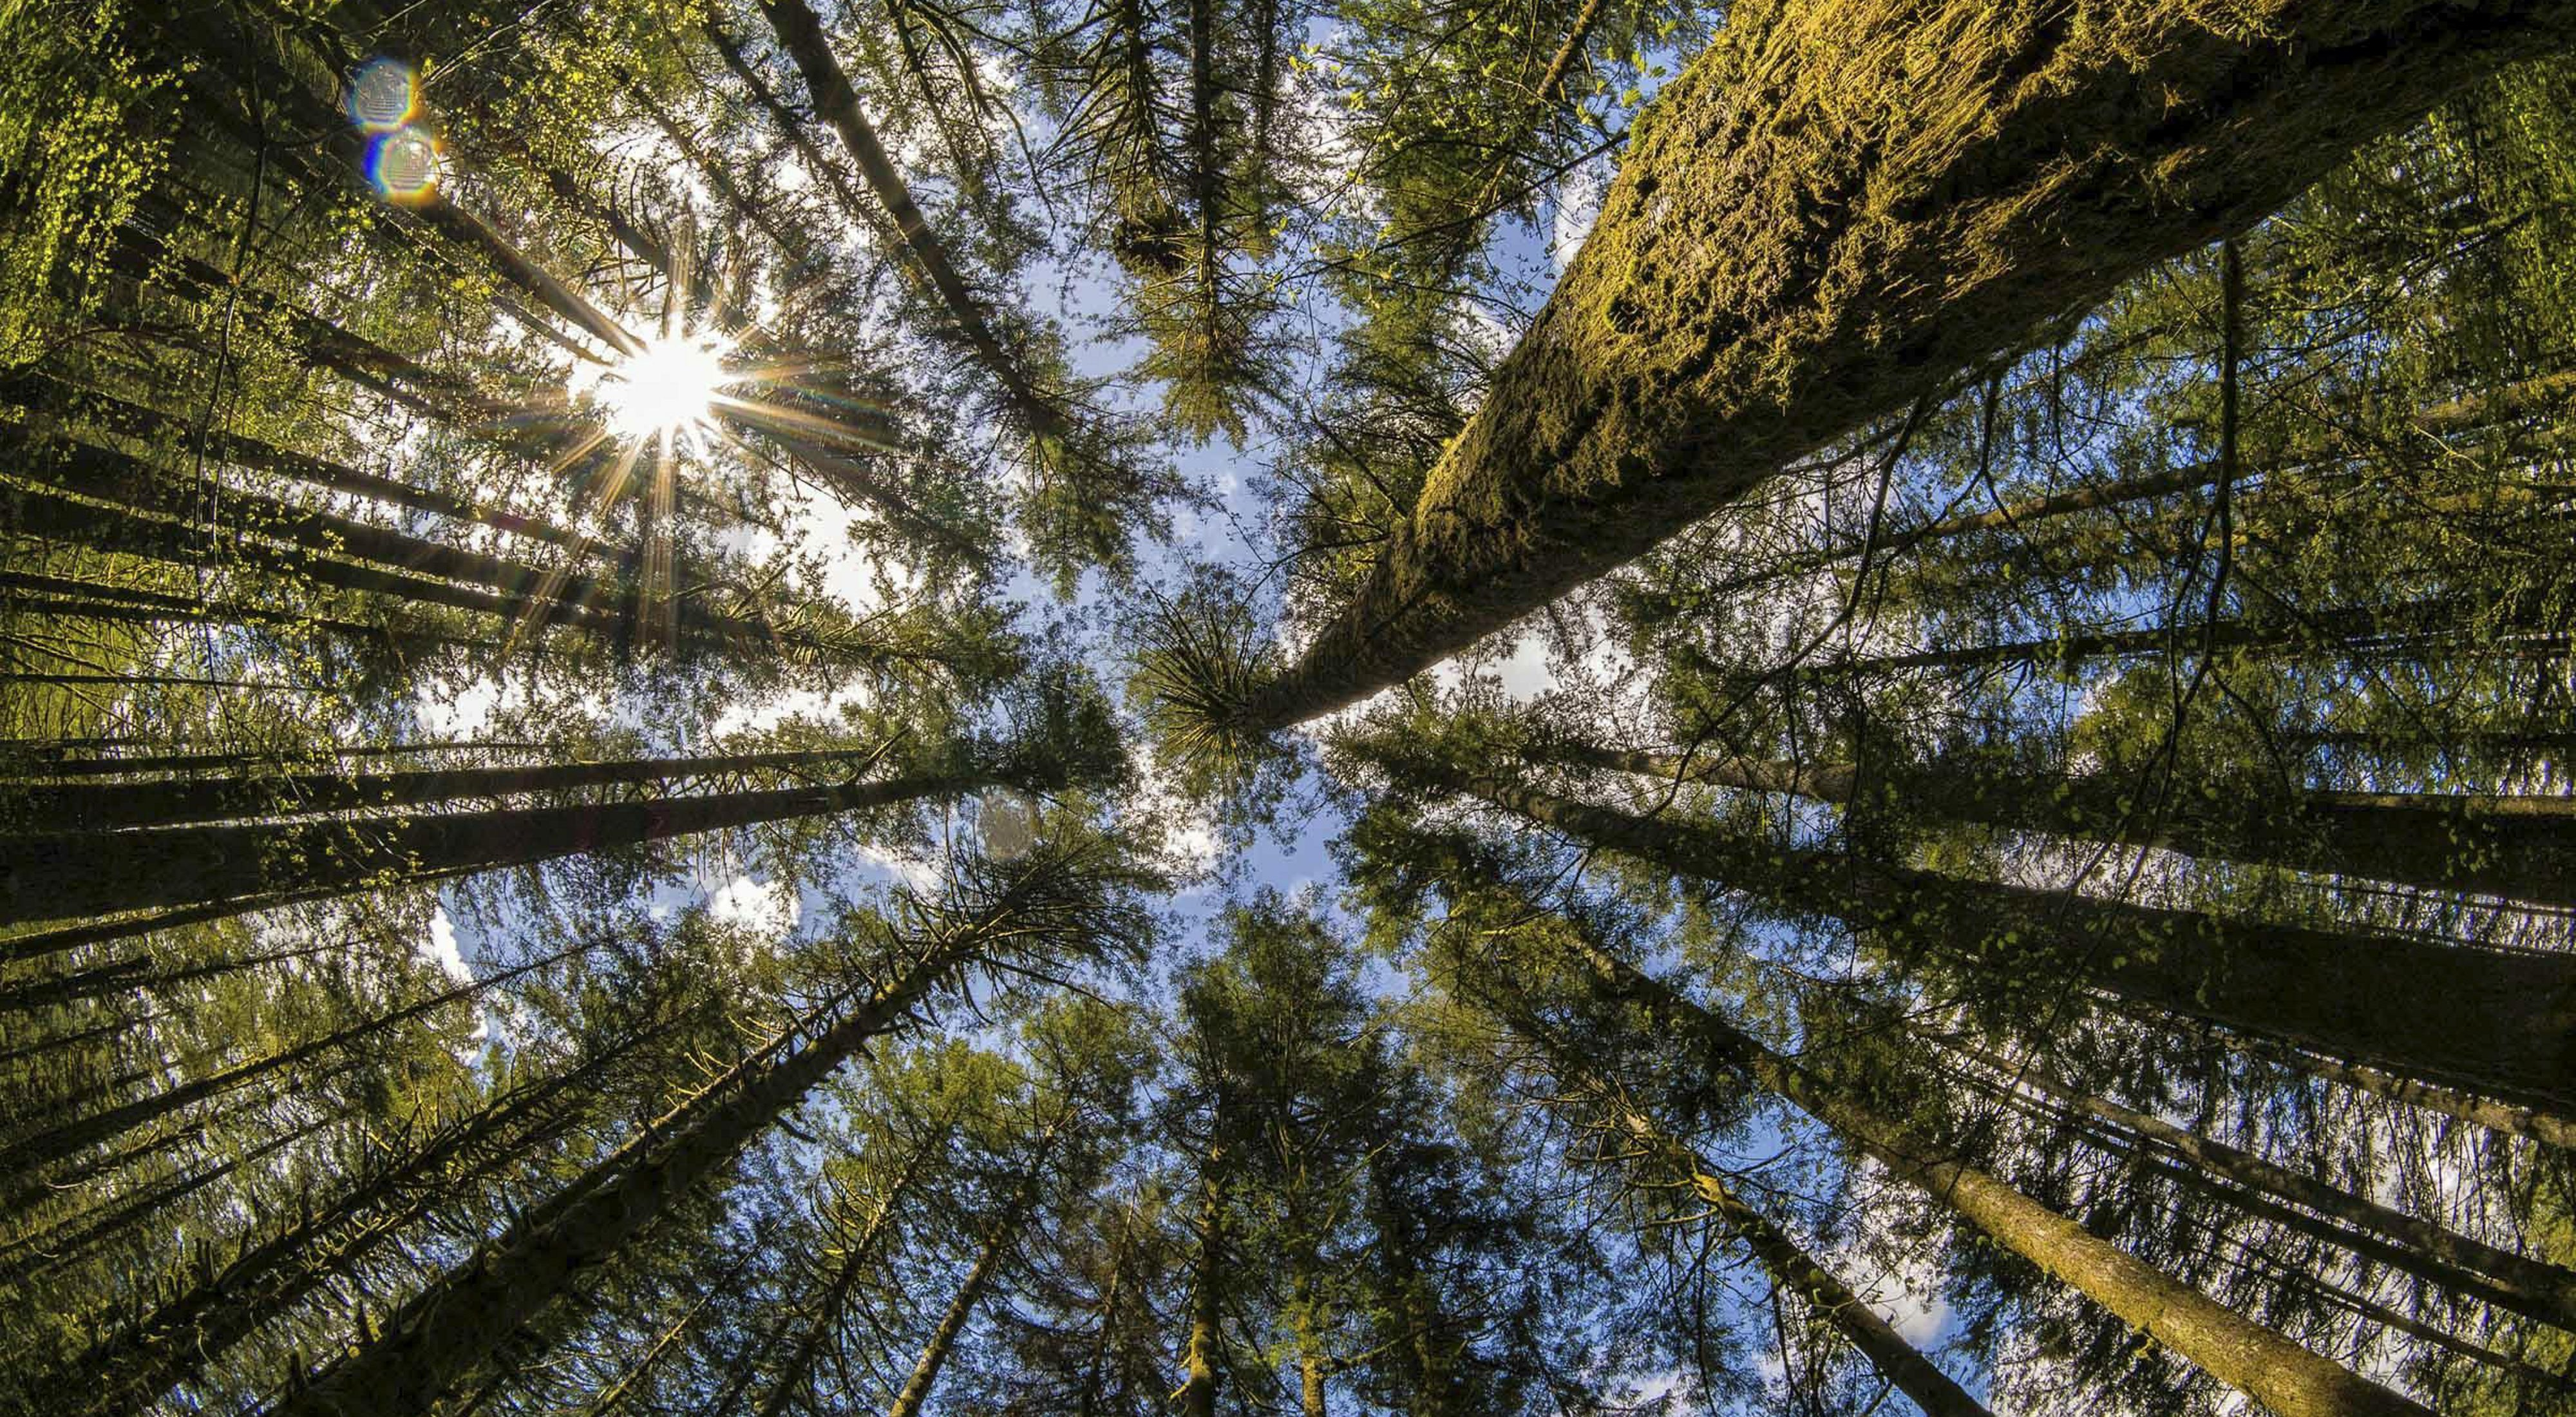 Photo looking upwards at giant trees in a Washington state forest.